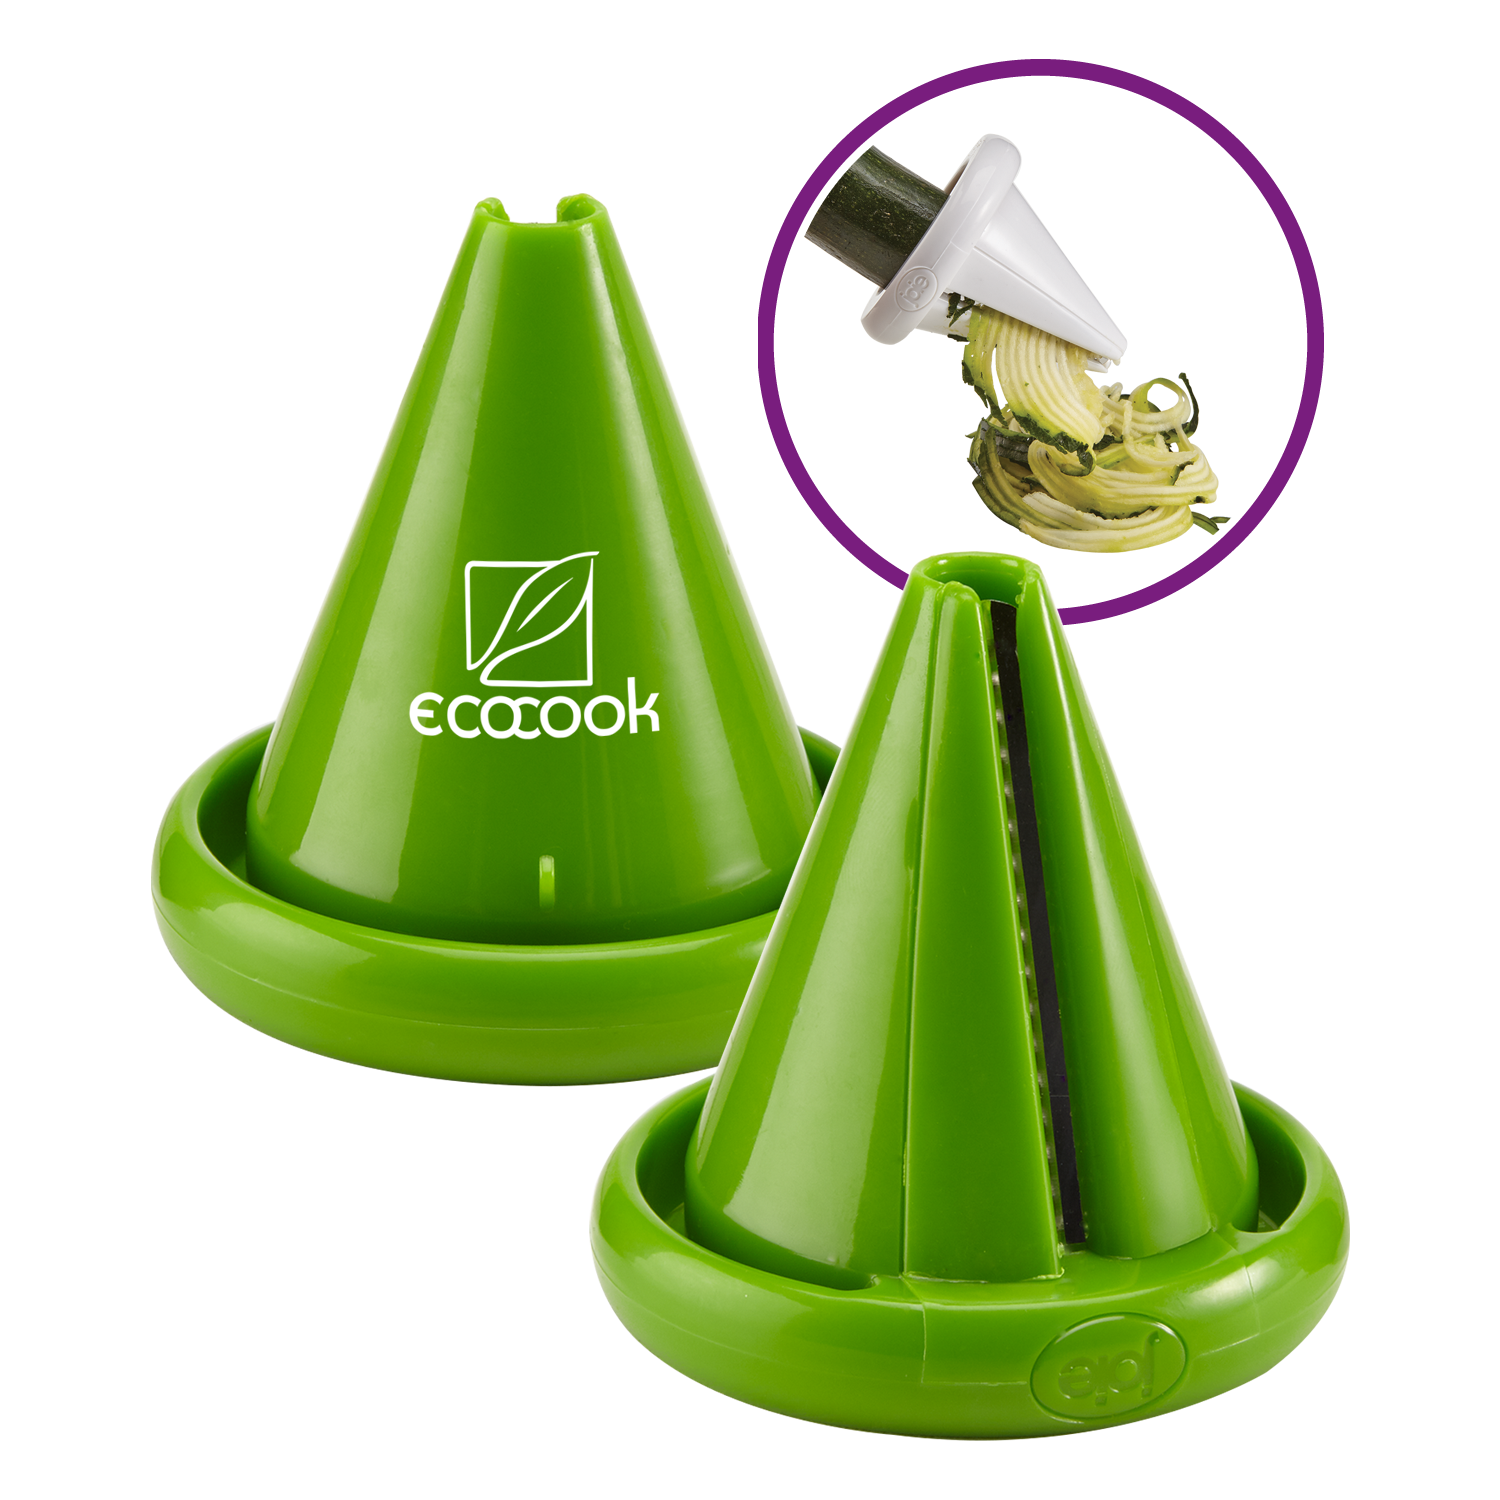 4 Cool, Functional & Cost Effective Kitchen Promo Items